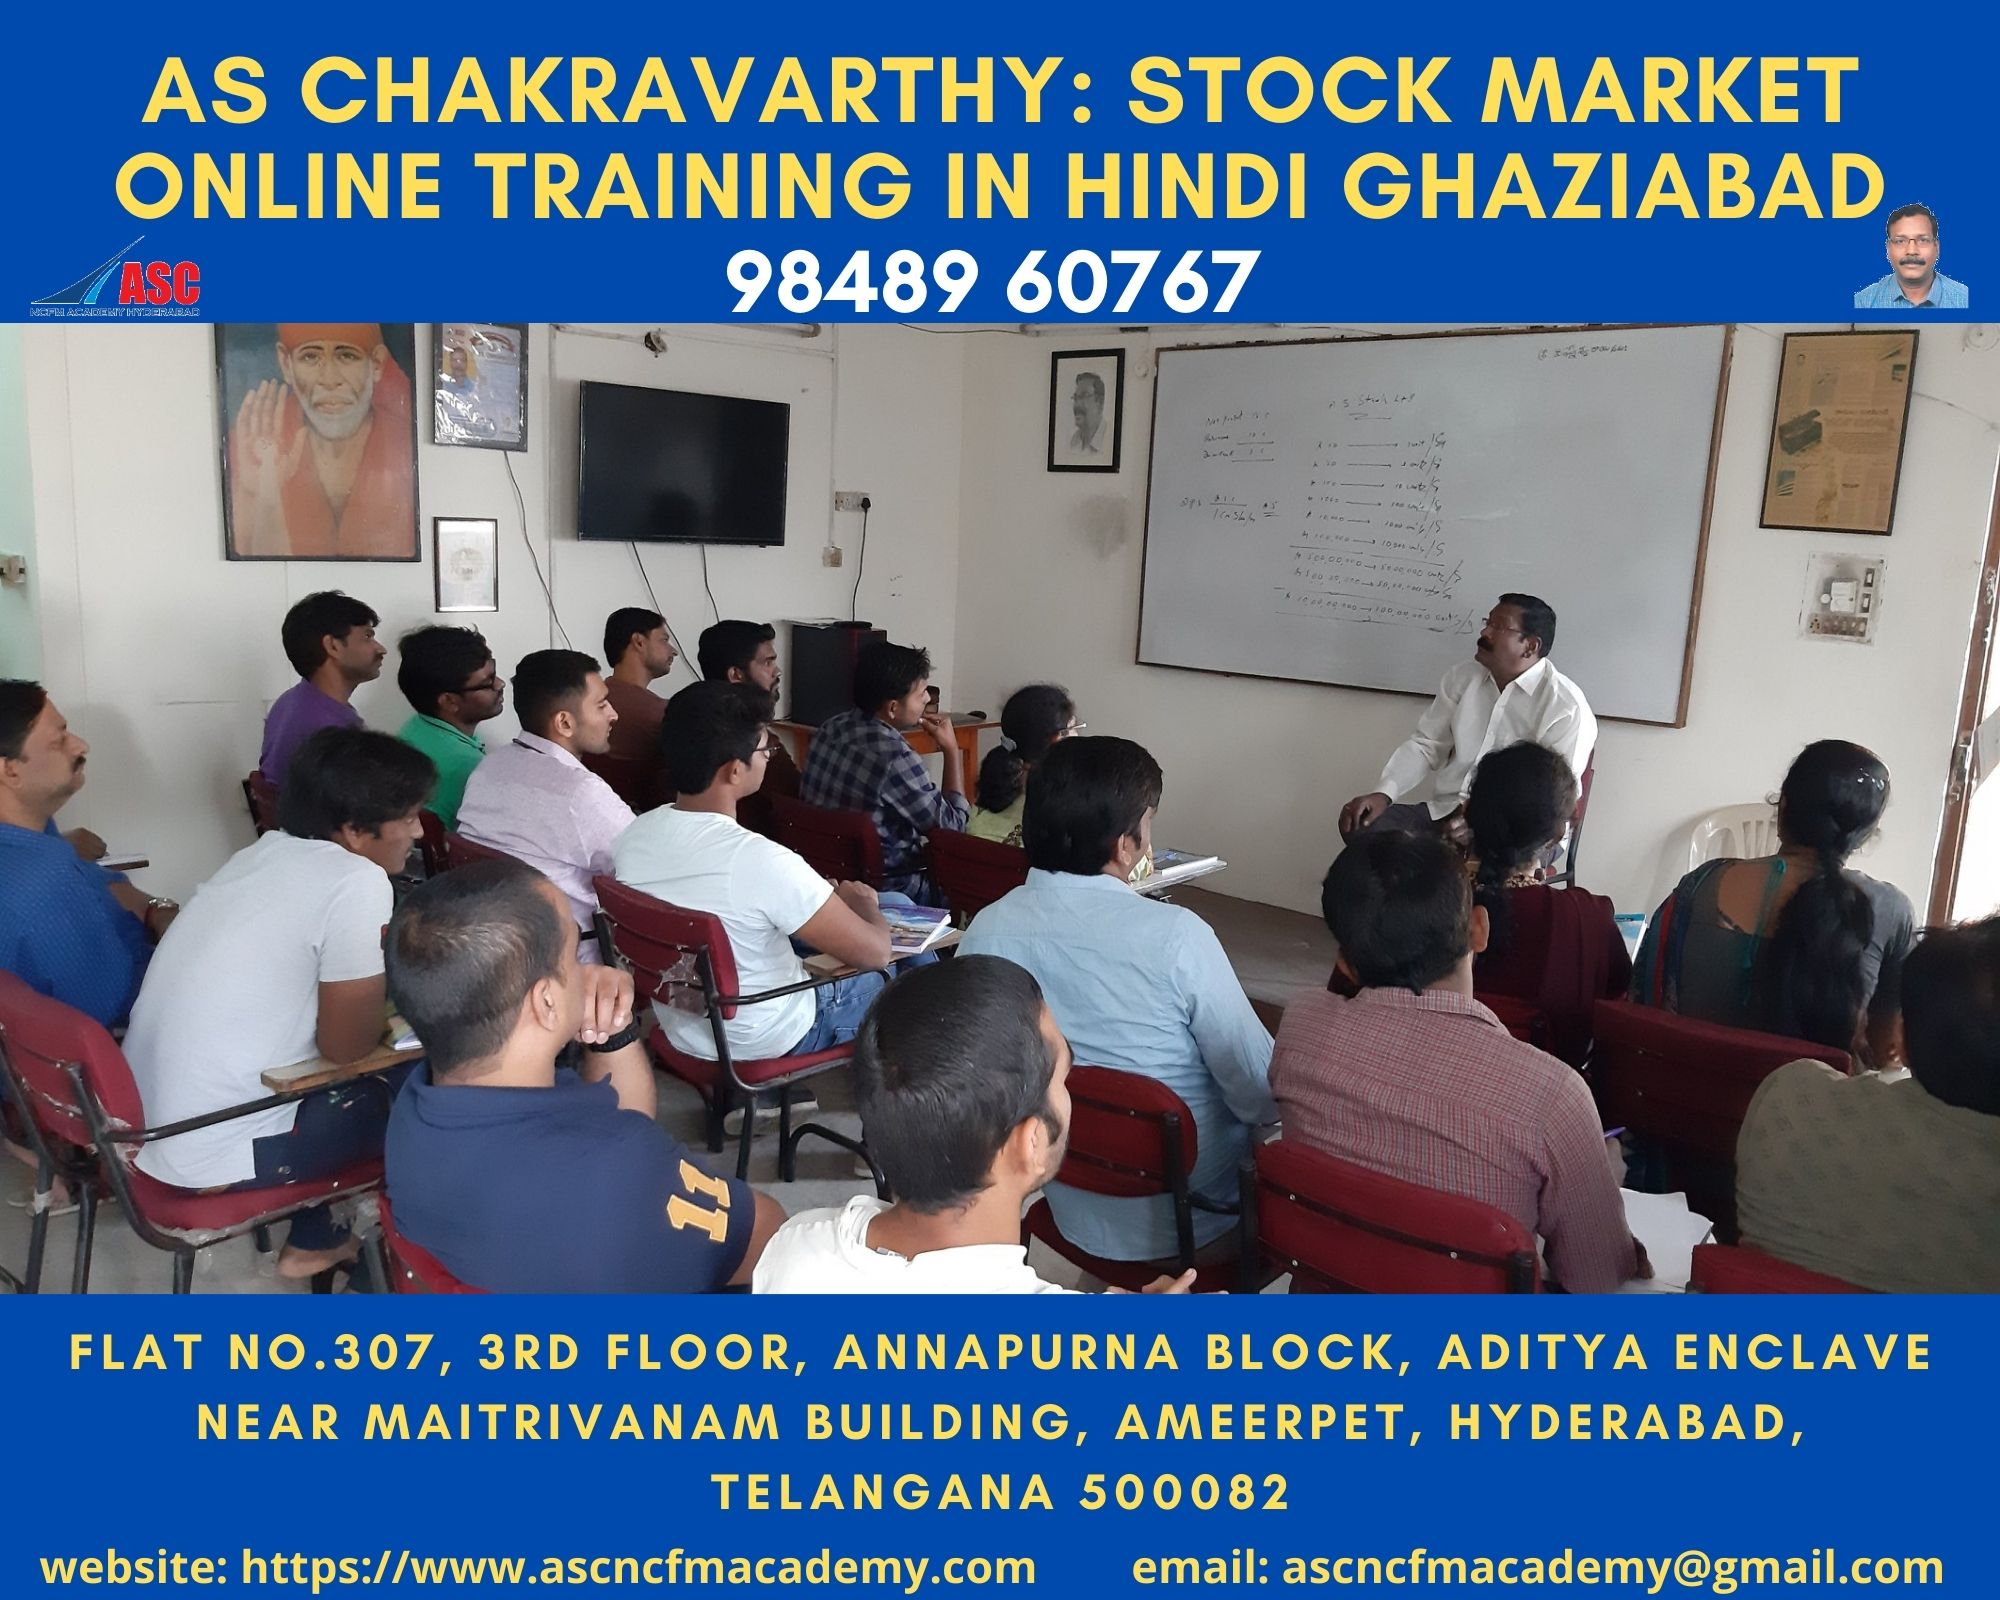 Online Stock Market Technical Training in Hindi Ghaziabad